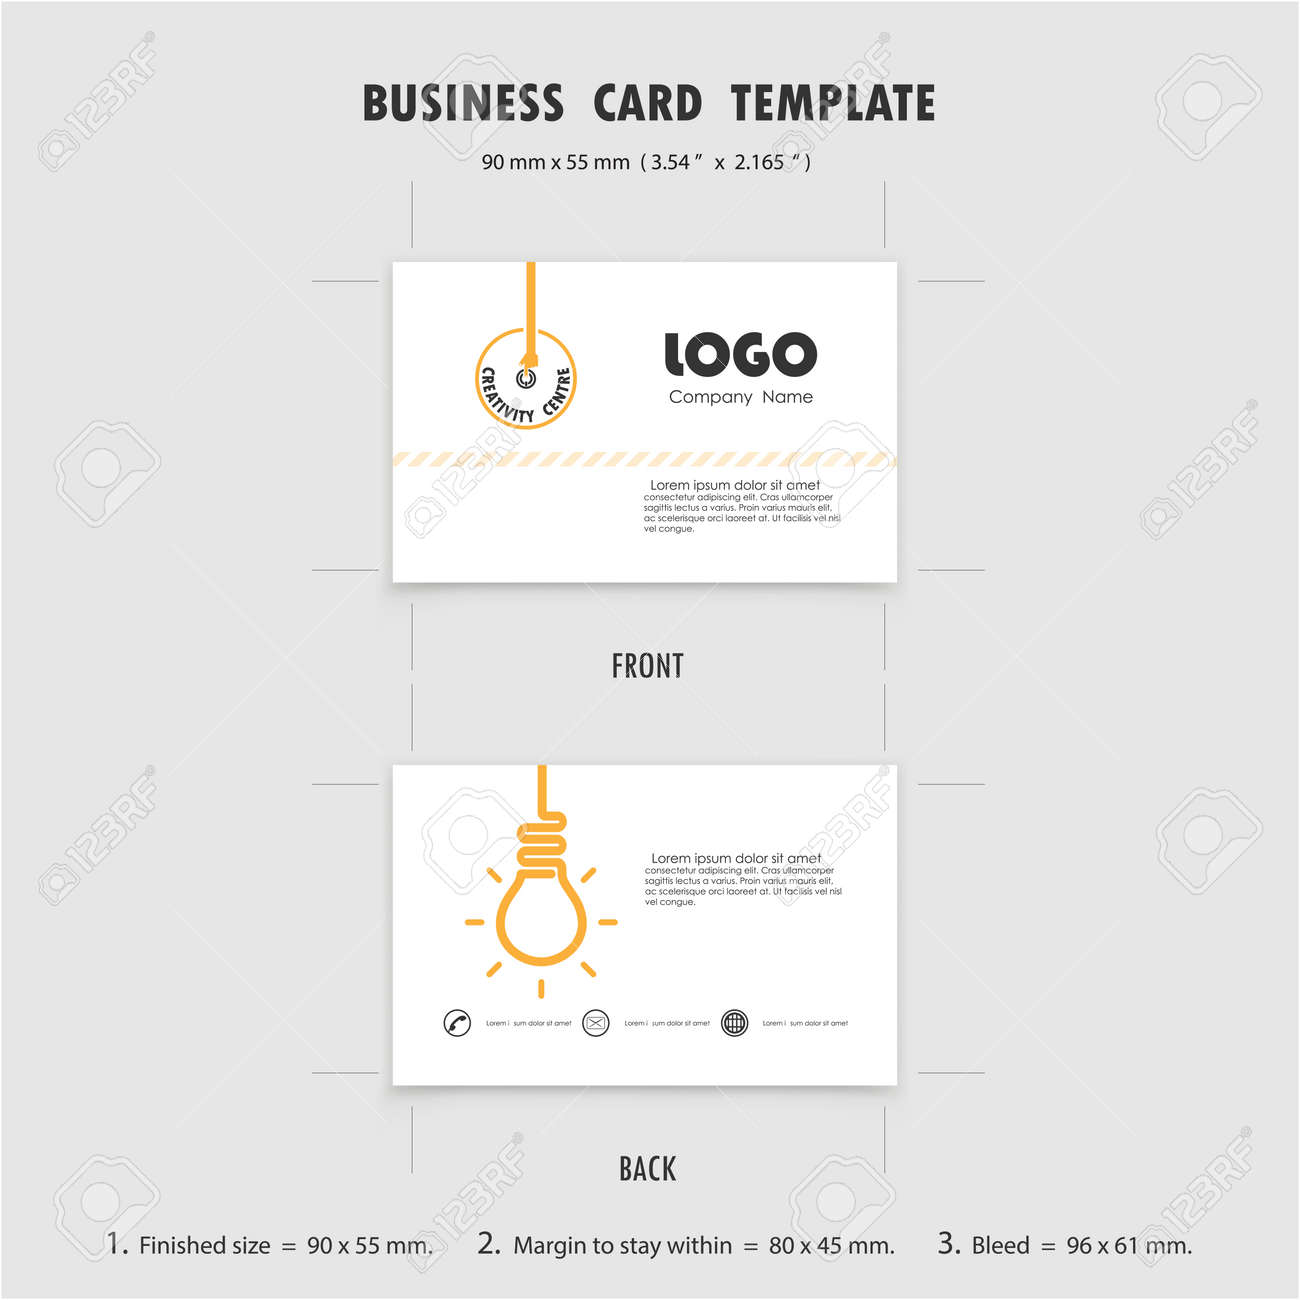 Regaling Name Cards Symbol What Is Size Pixels What Is Size A Business Card A Business Card X 2 165 45966505 Abstract Business Cards Design Template Size 90mmx55mm 3 54 cards What Is The Size Of A Business Card